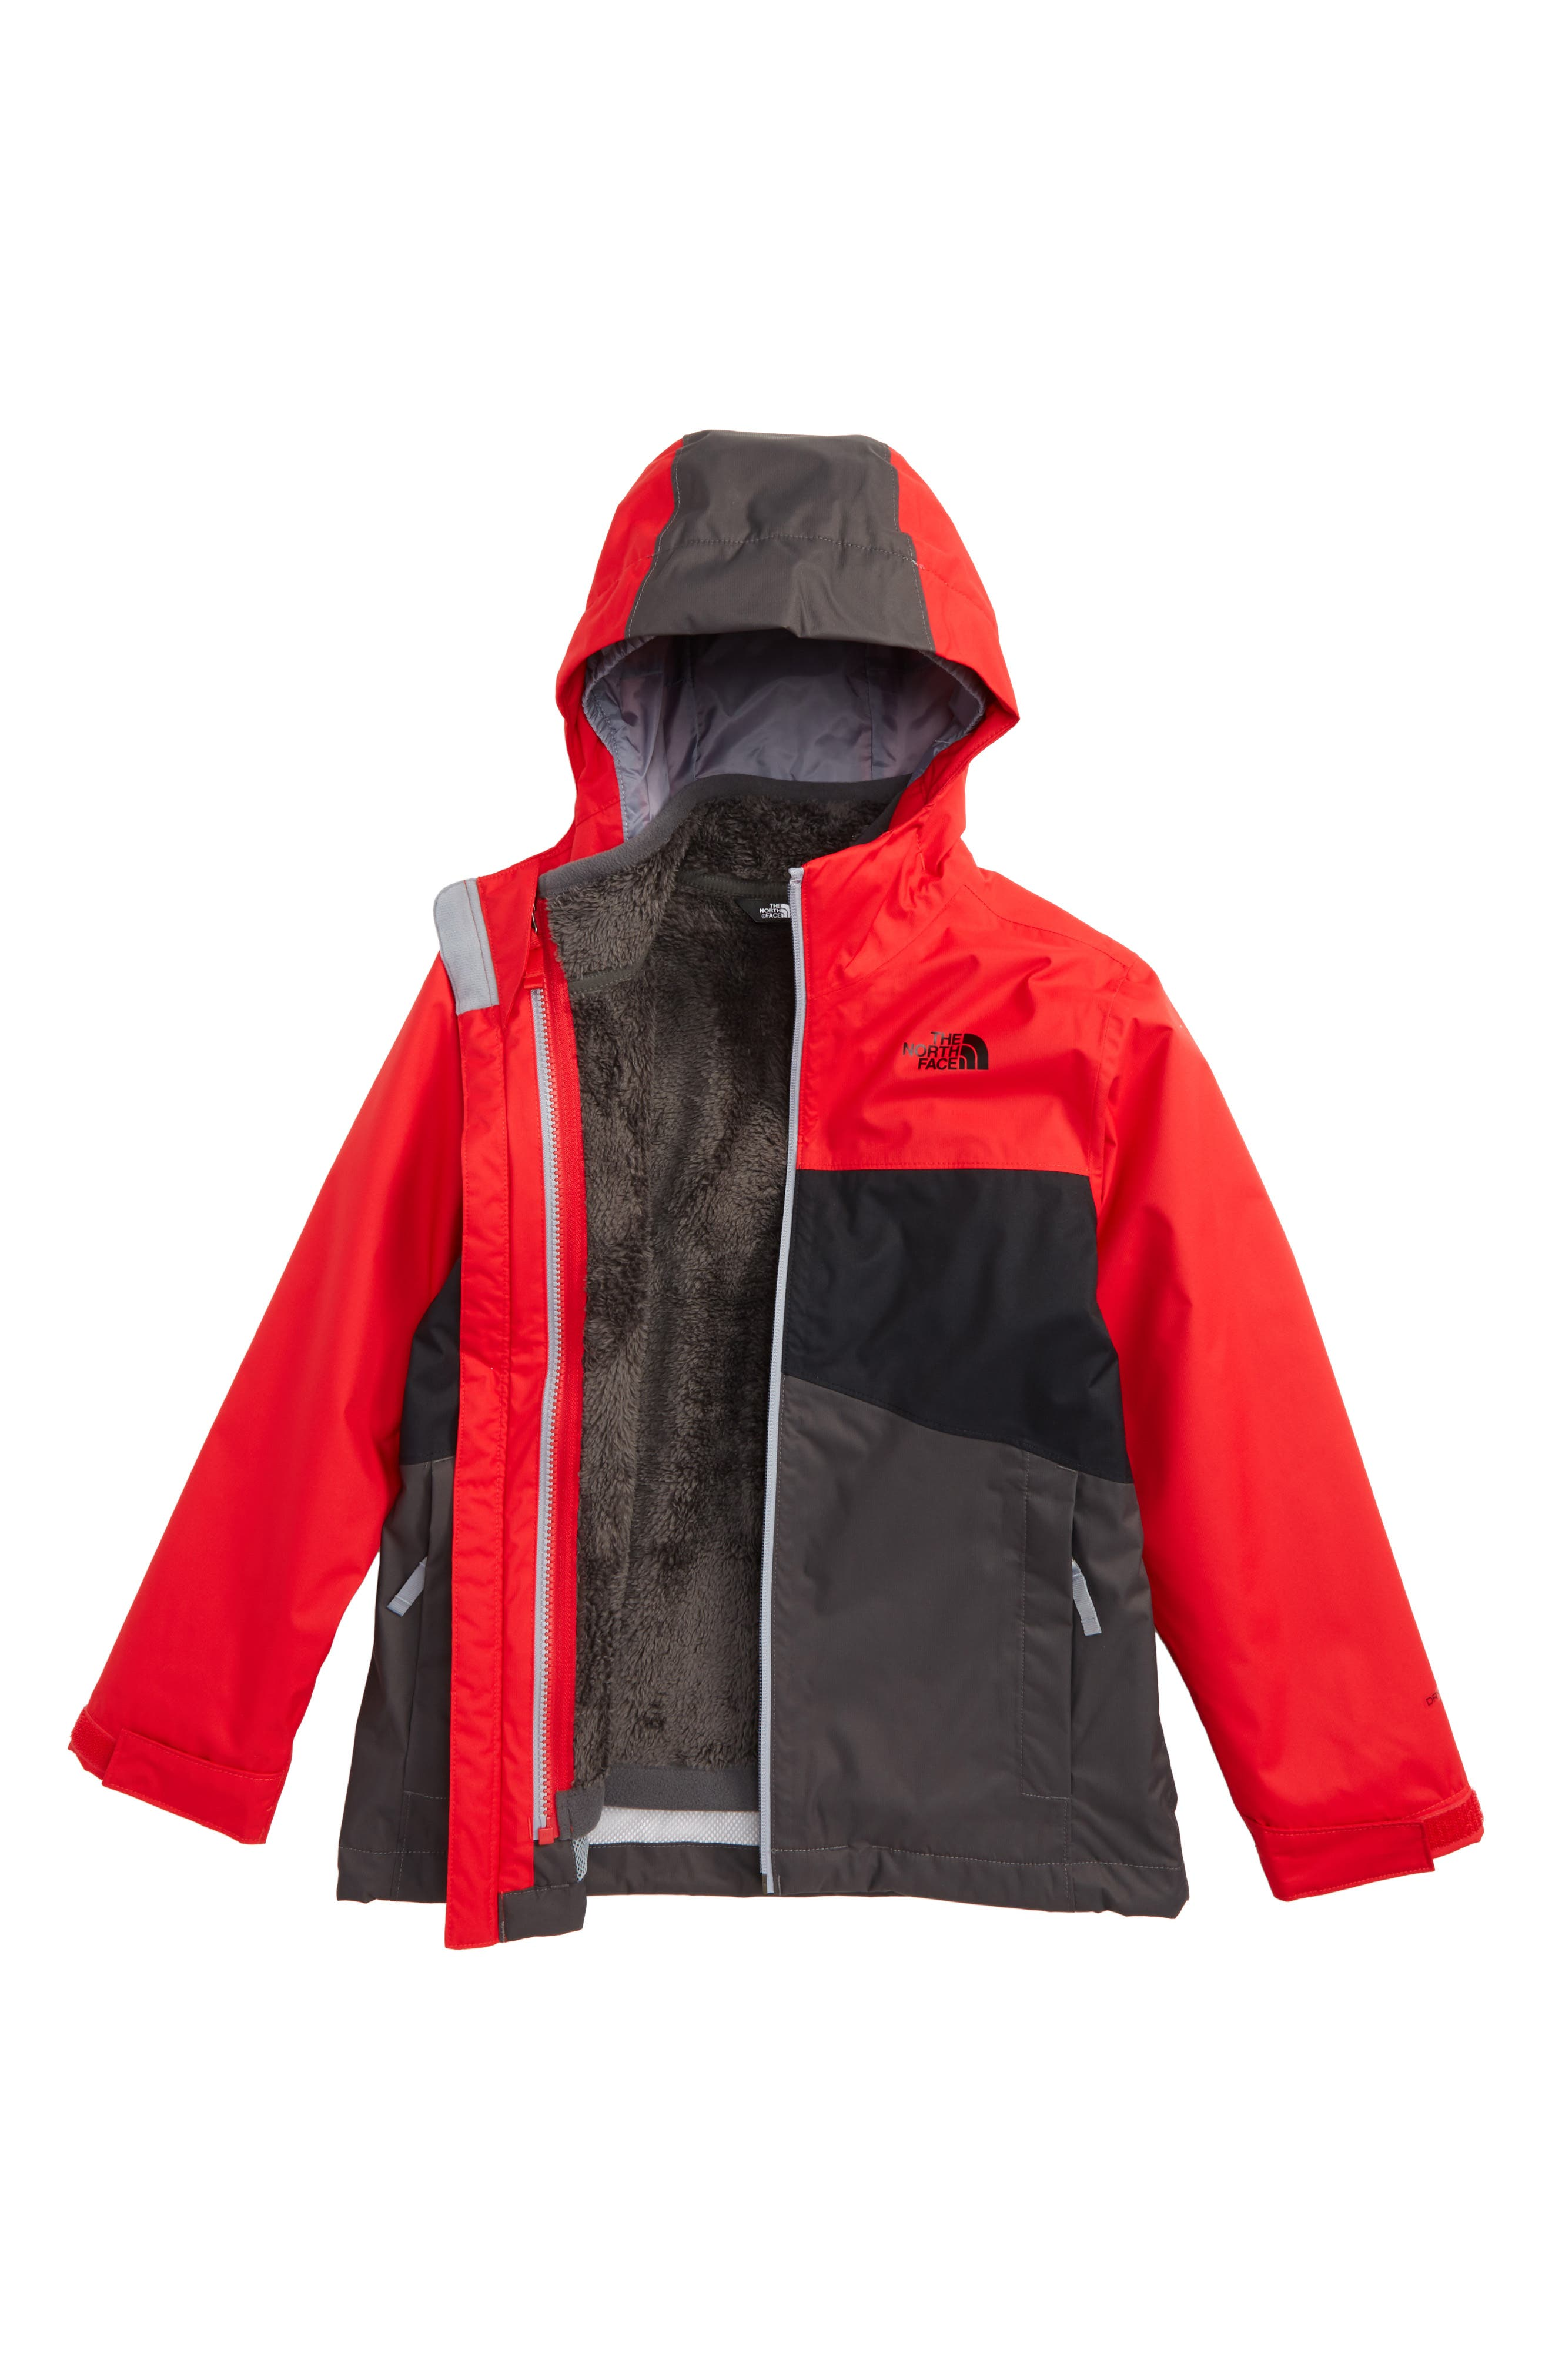 Alternate Image 1 Selected - The North Face Chimborazo Triclimate® 3-in-1 Jacket (Big Boys)